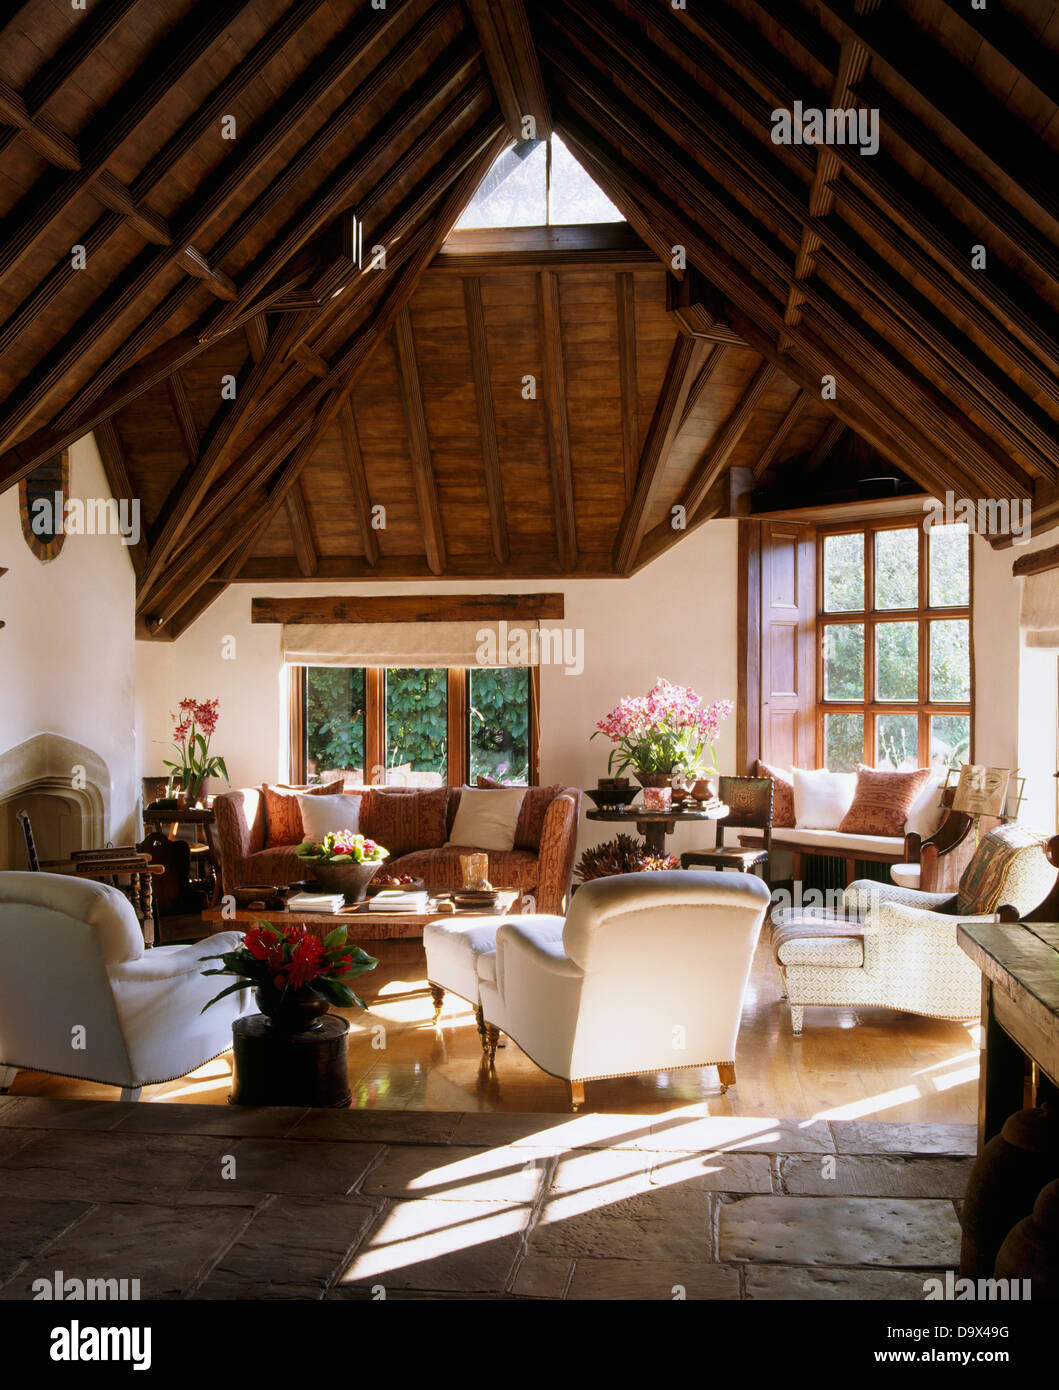 High, vaulted beamed roof in large barn conversion sitting room with white armchairs and sofa and flagstone and - Stock Image